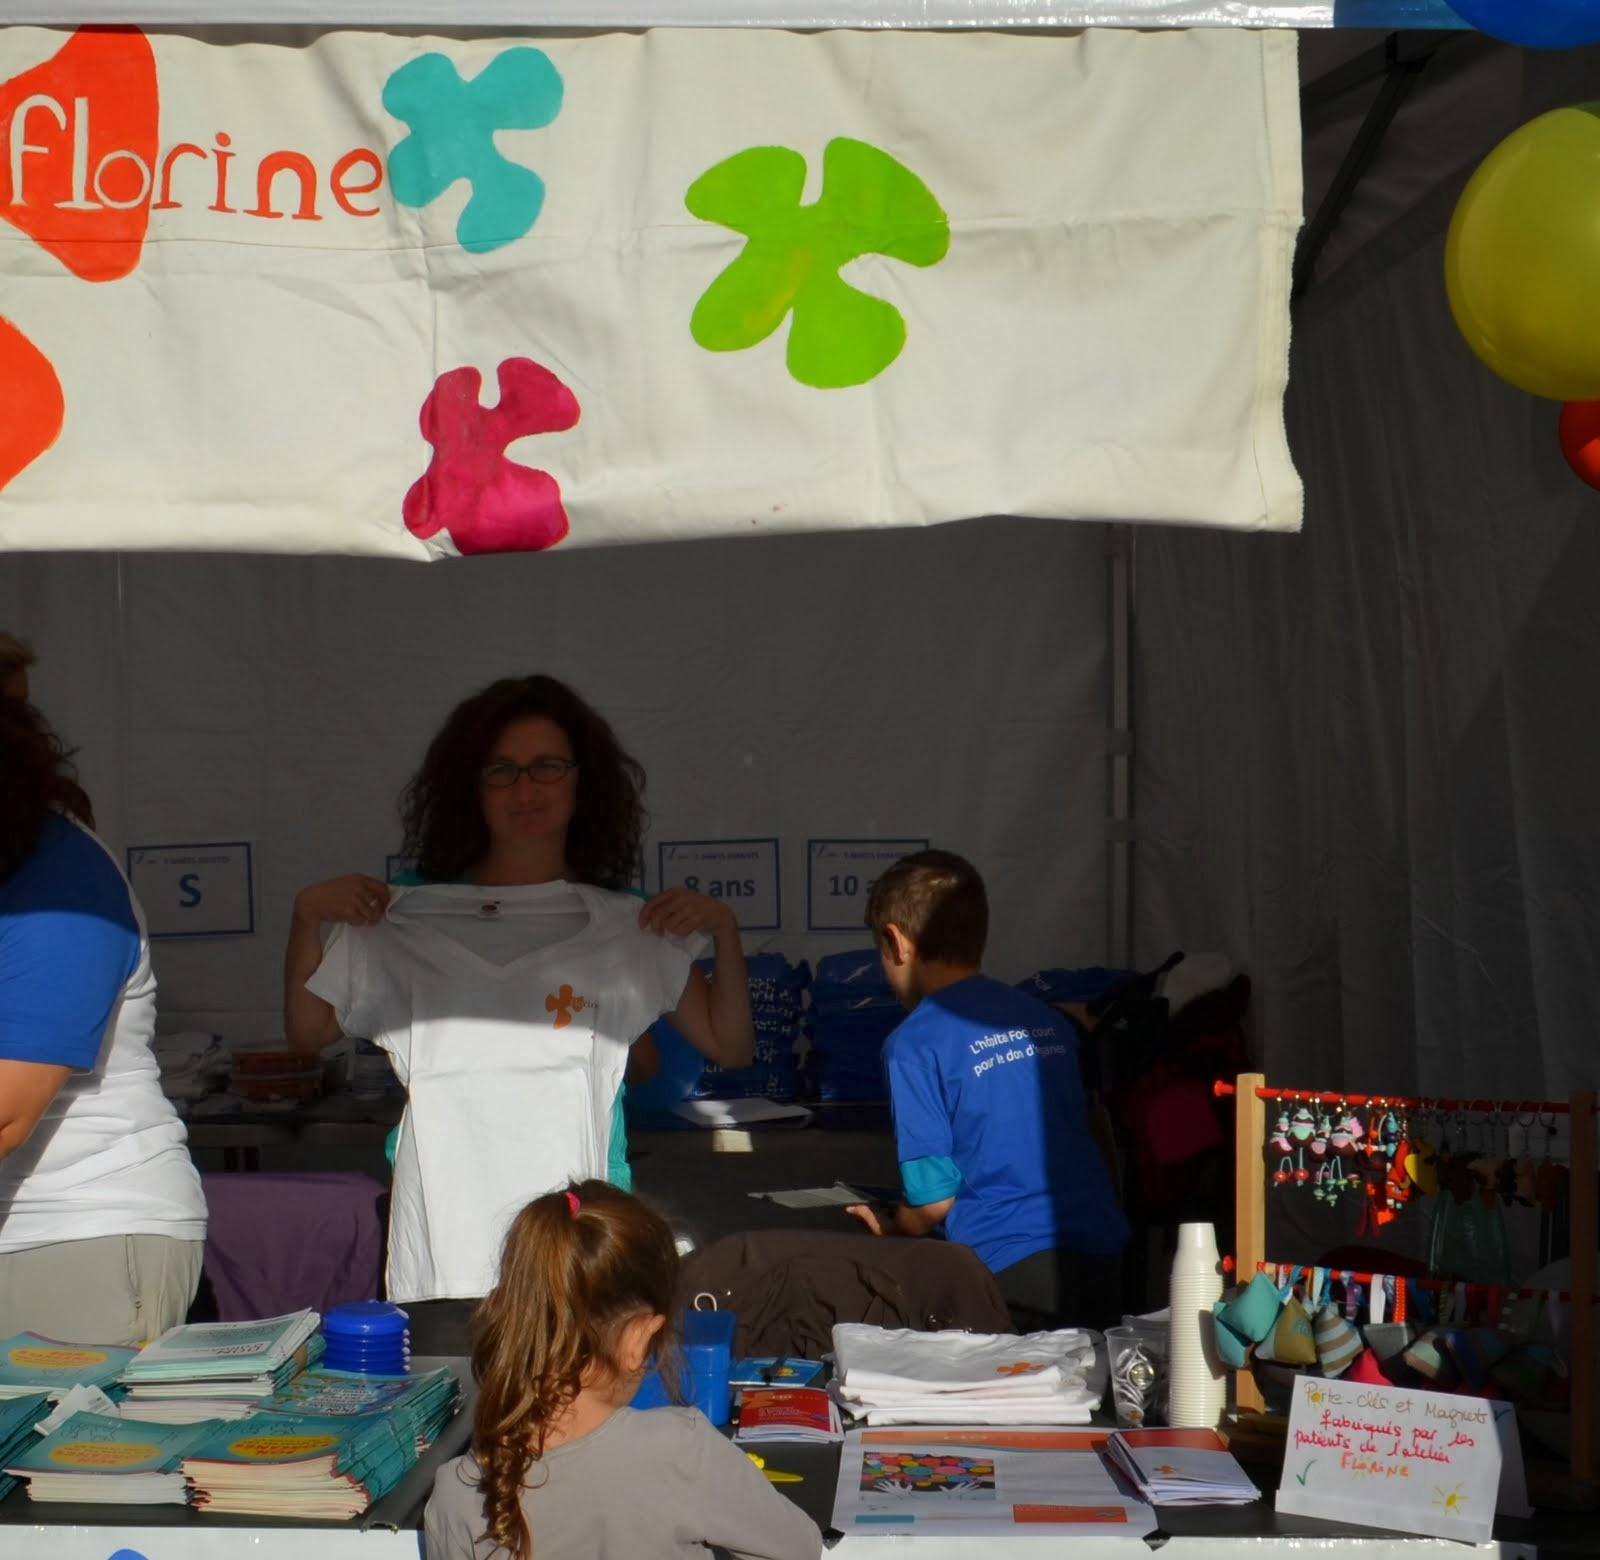 Stand Florine.